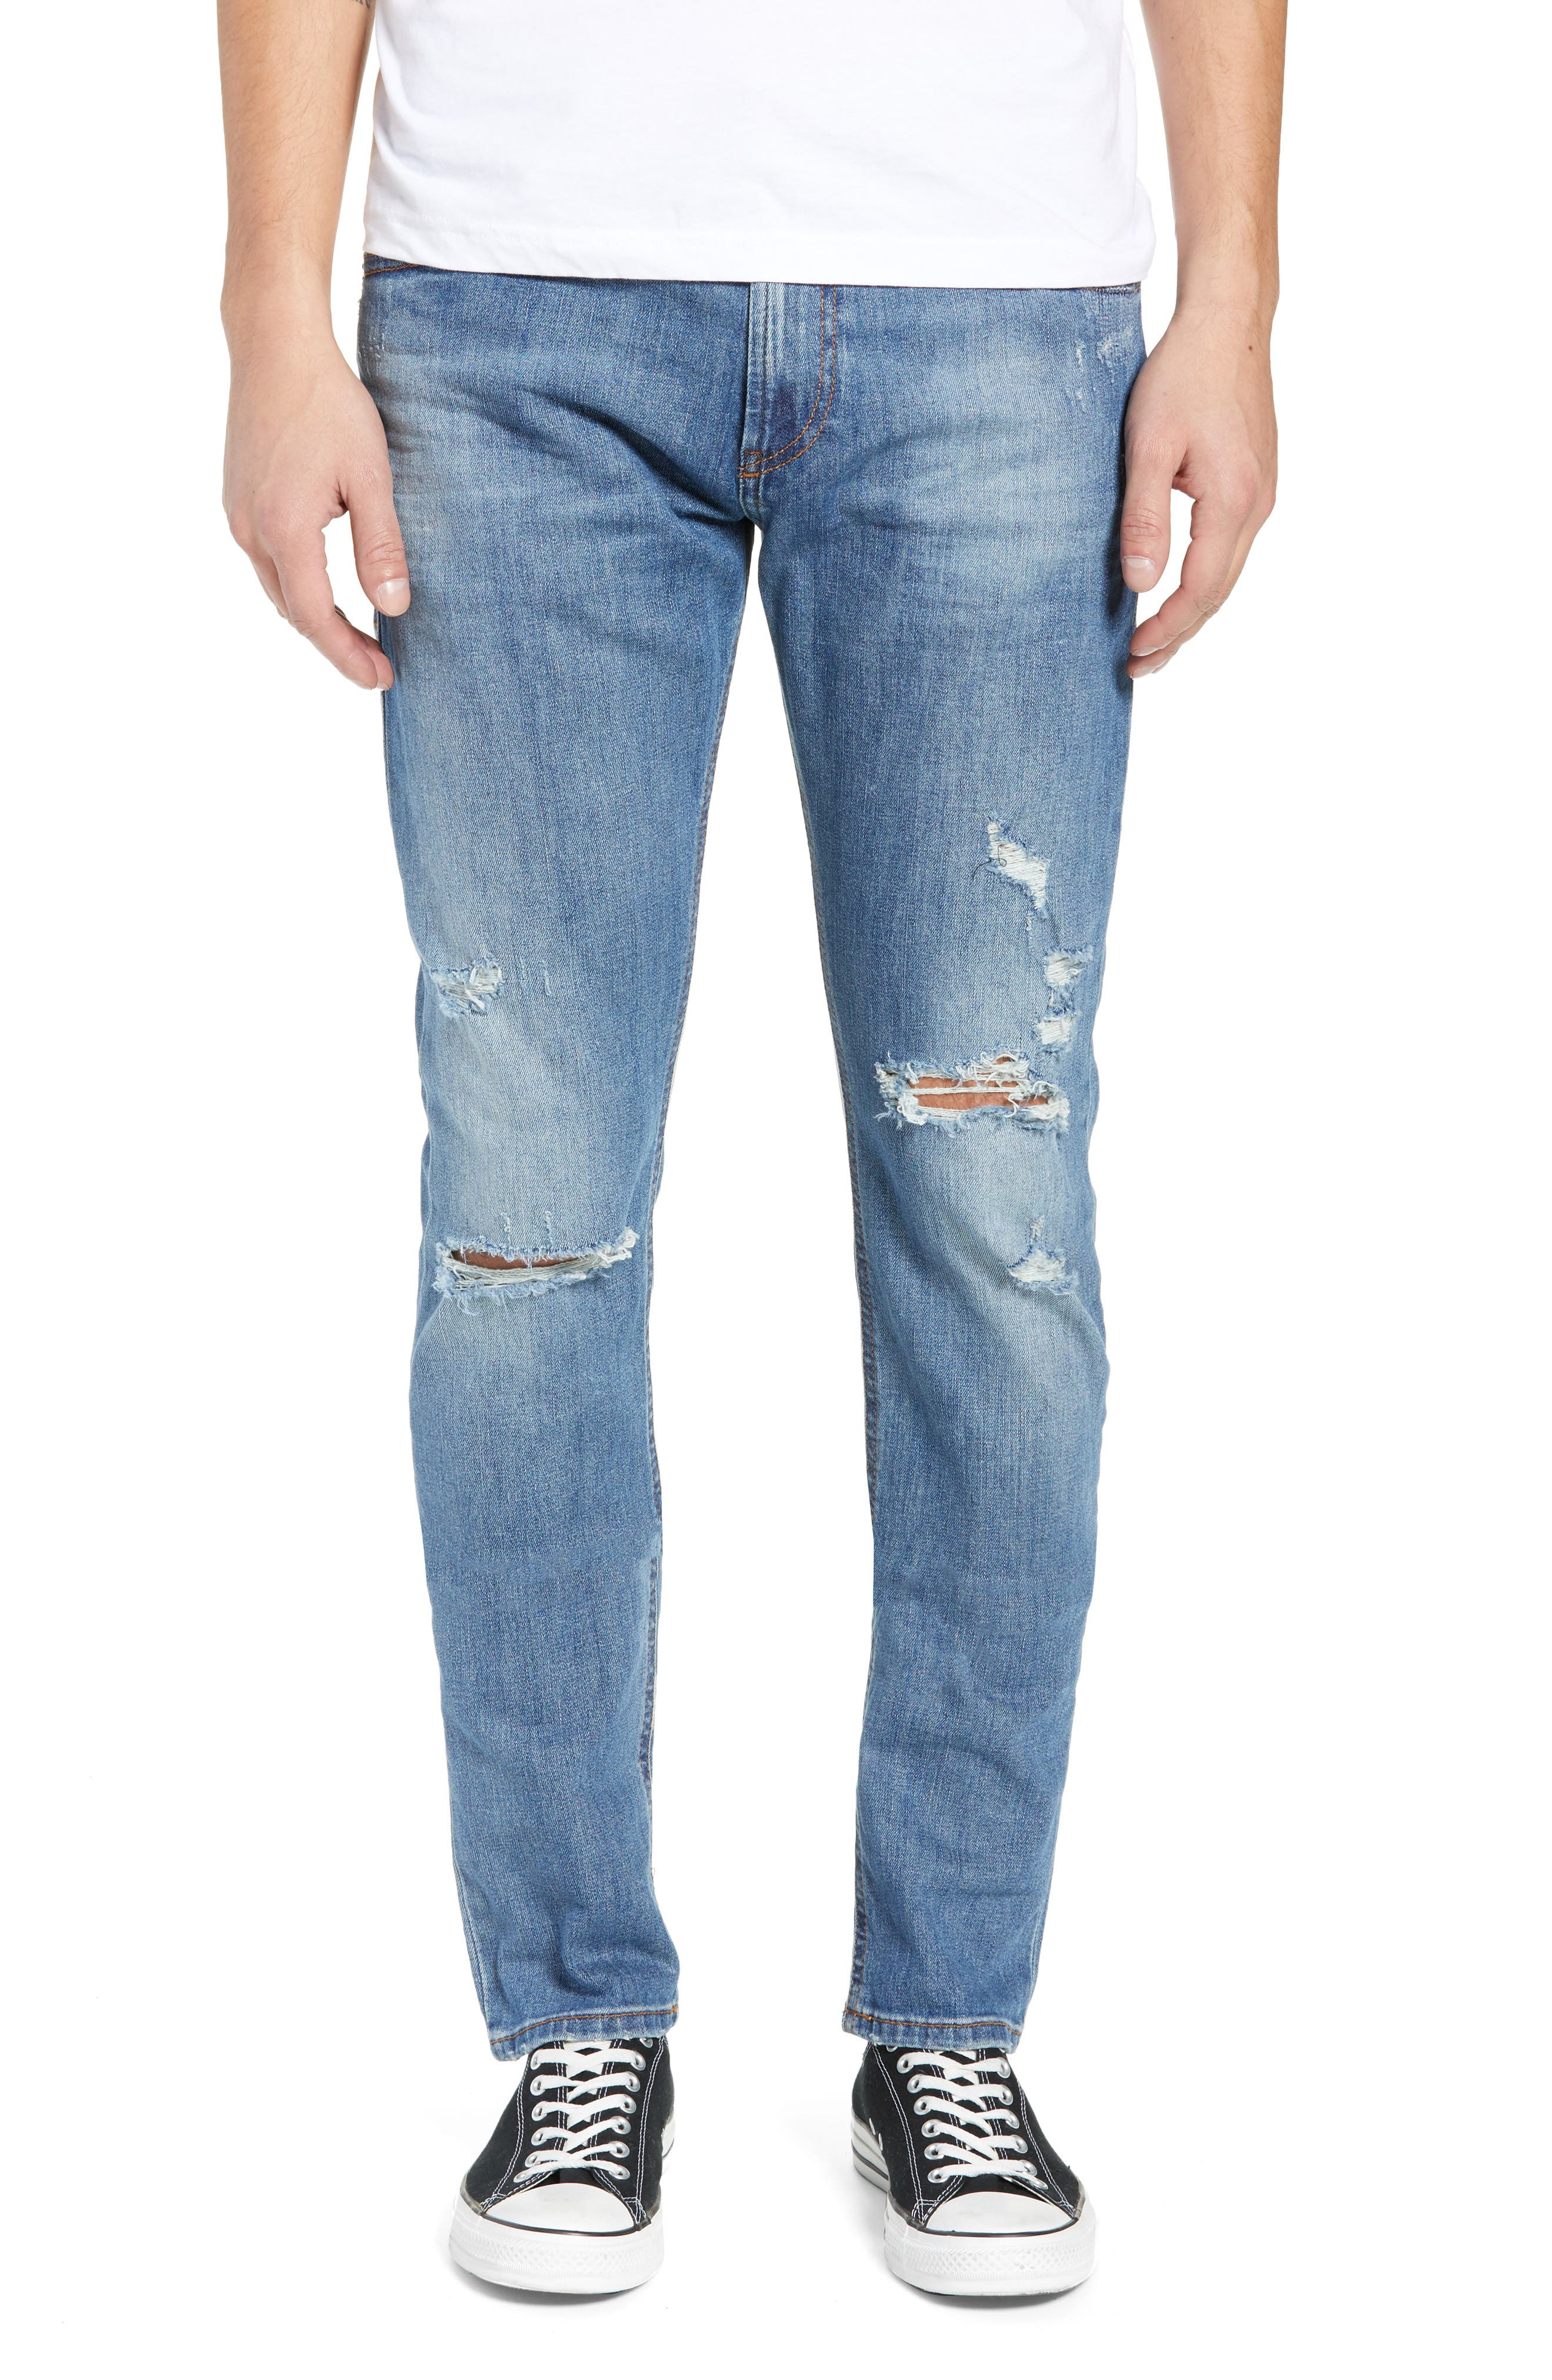 Thommer Skinny Fit Jeans,                         Main,                         color, CN011